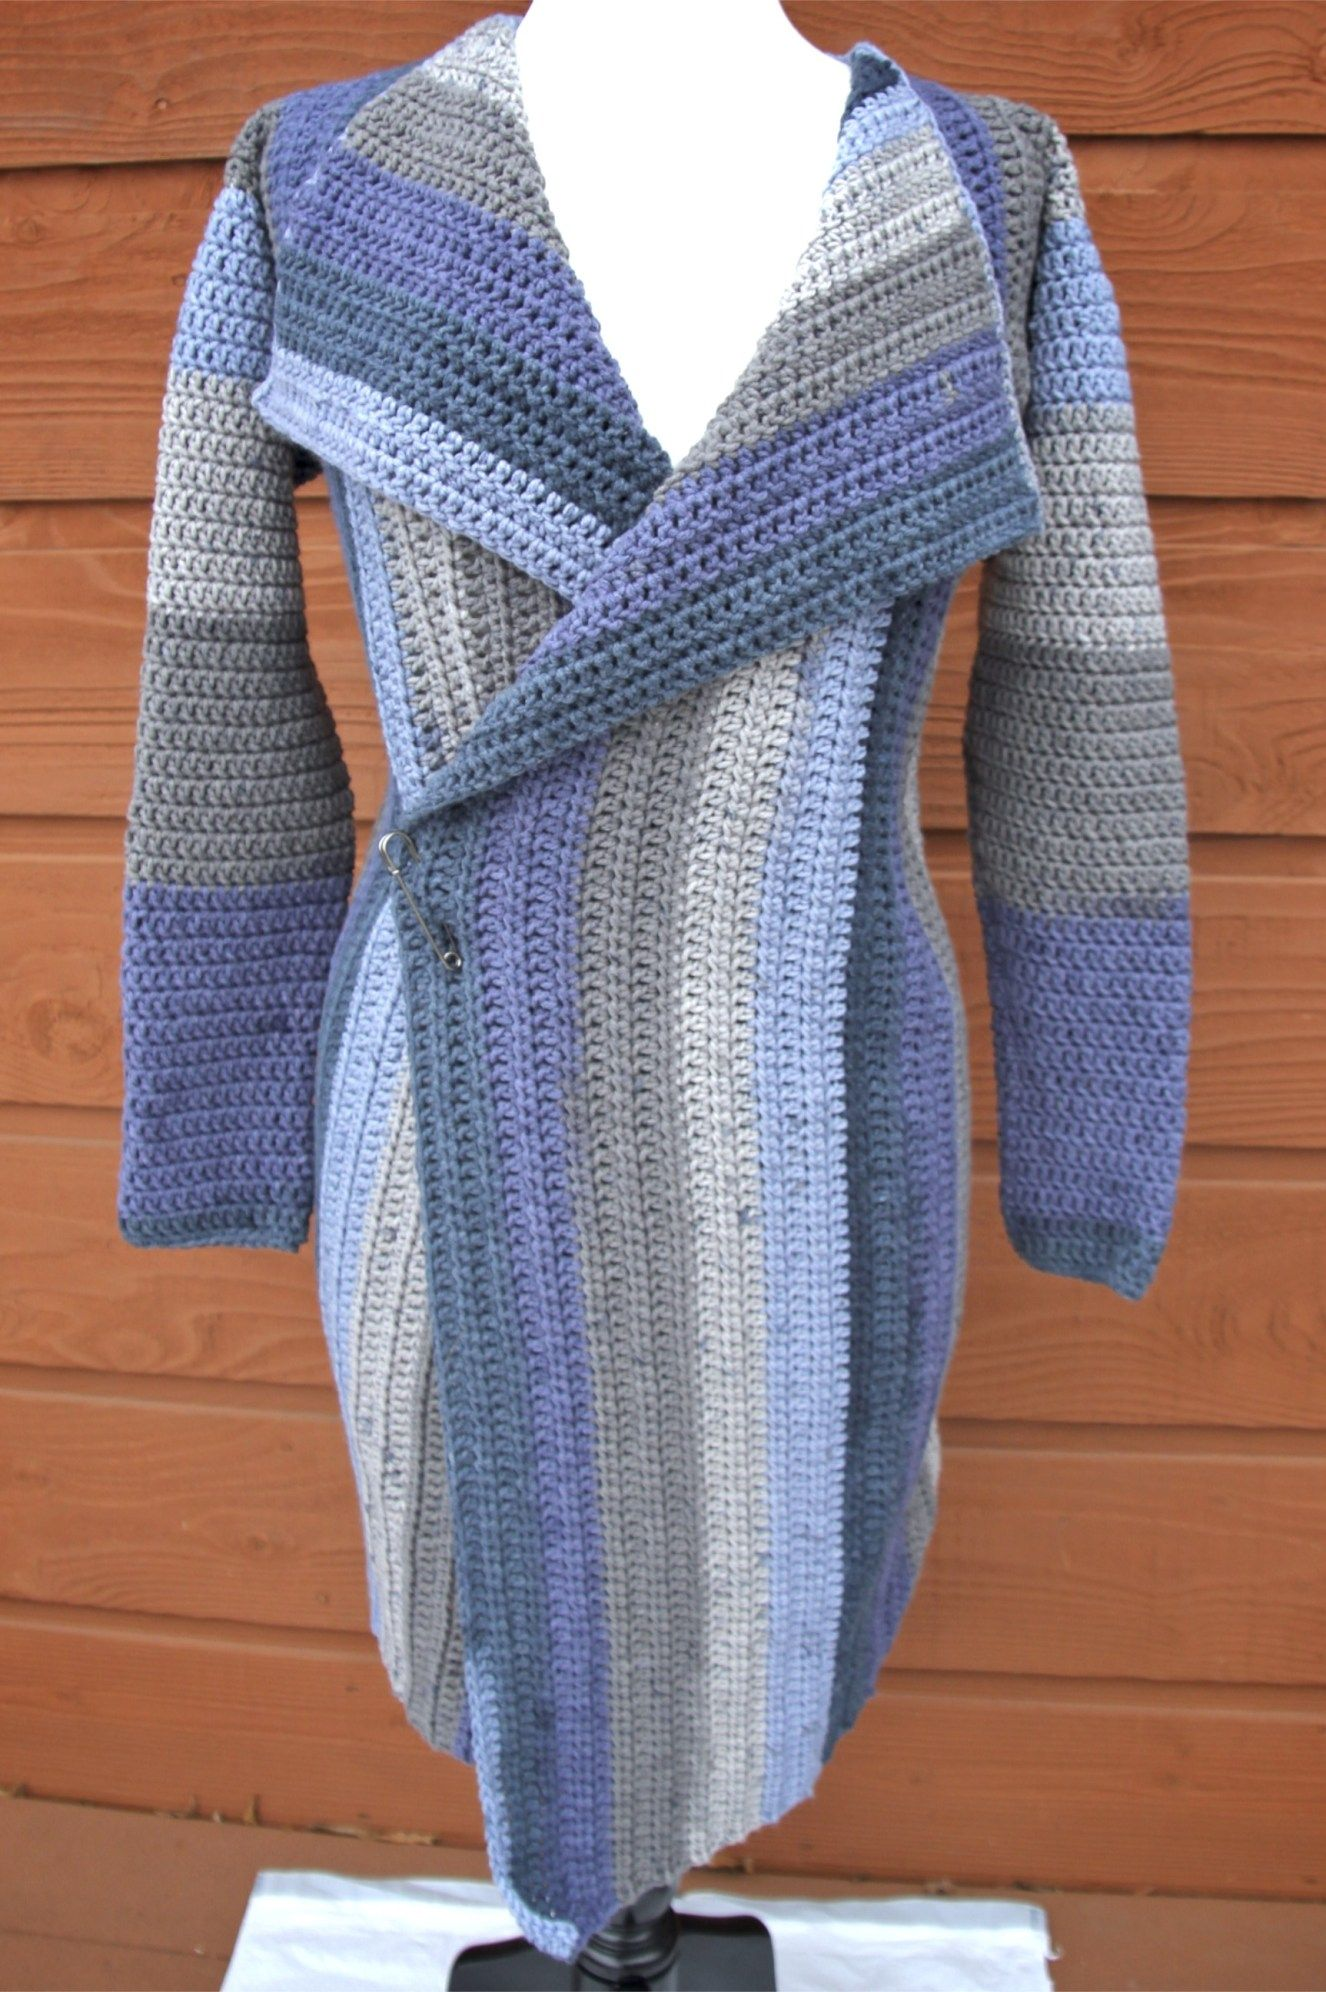 Cozy Fireside Cardigan Crochet Pattern featuring Caron Big Cakes ...